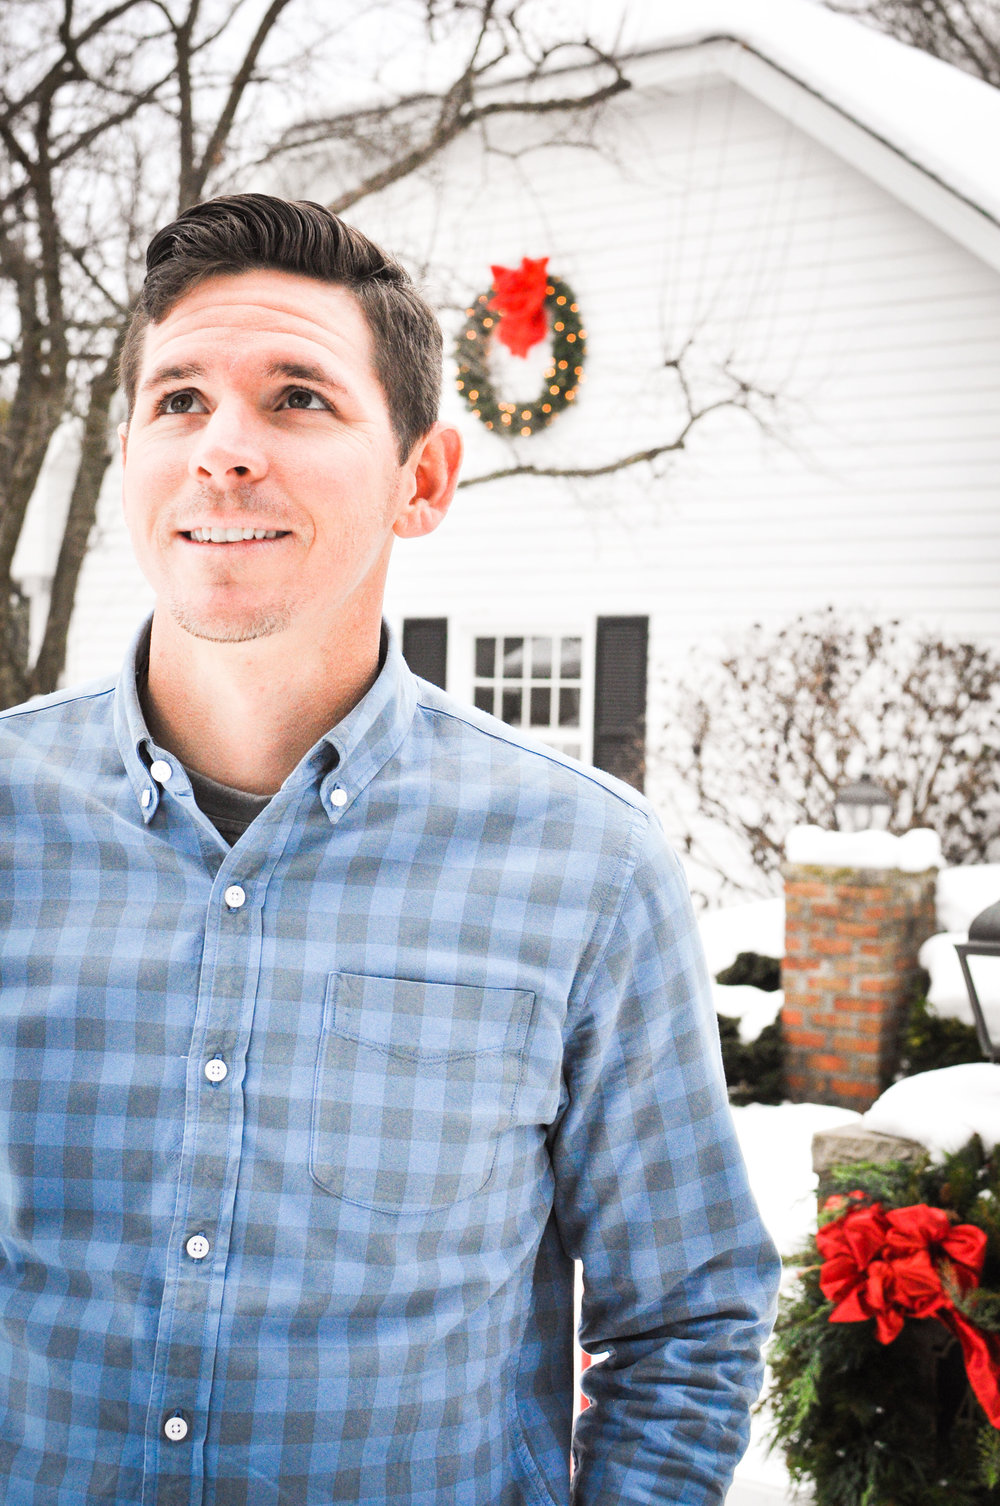 Man in front of Christmas house in blue shirt